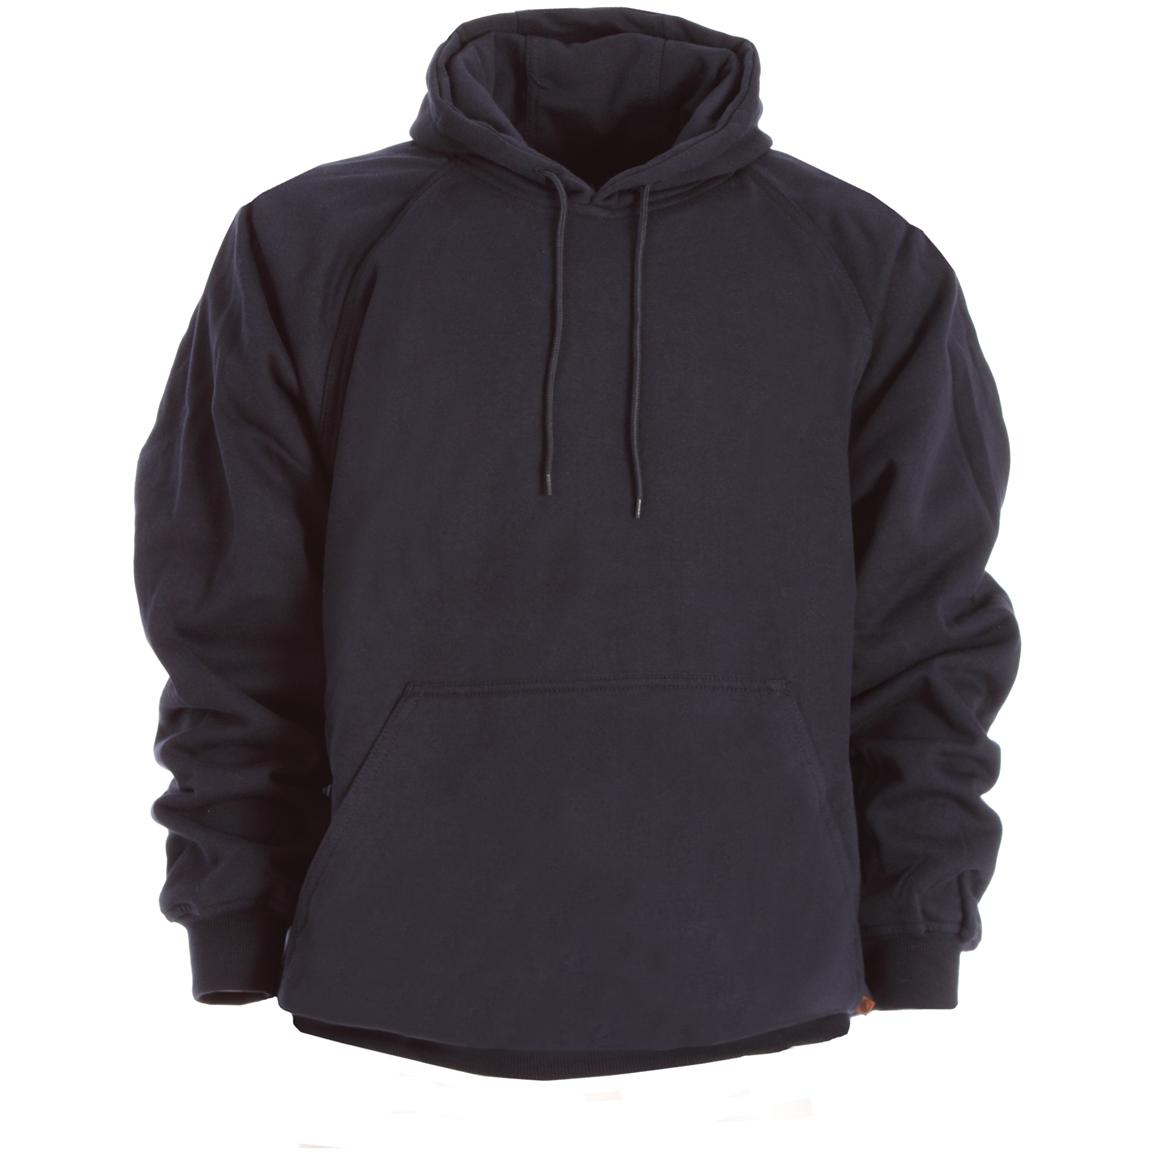 Berne Apparel® Thermal Lined Fleece Hooded Pullover, Navy